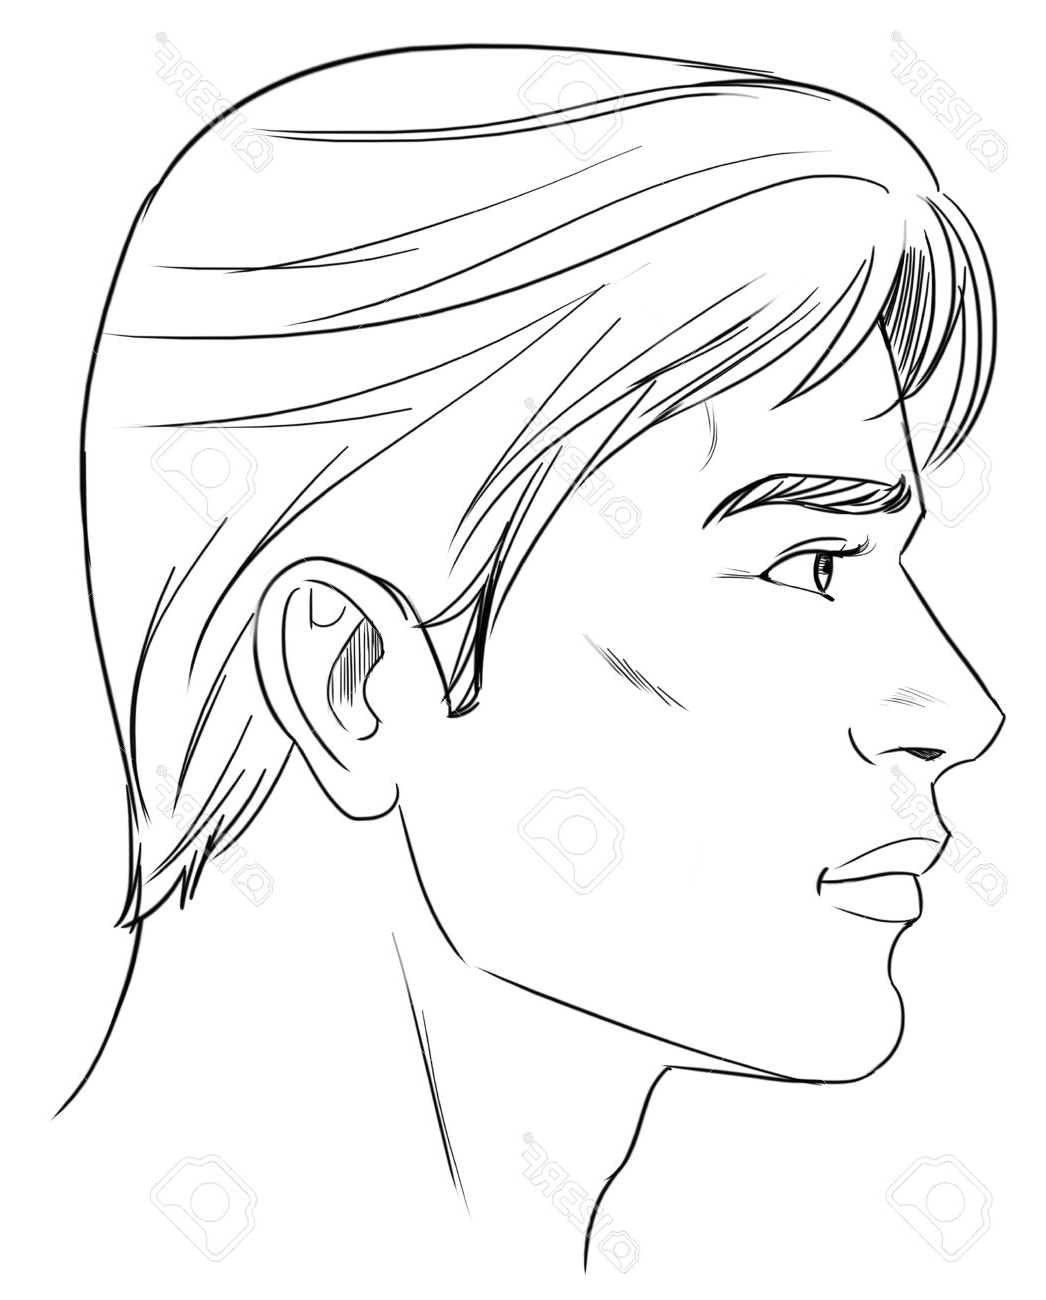 Male Drawing Outline At Getdrawings